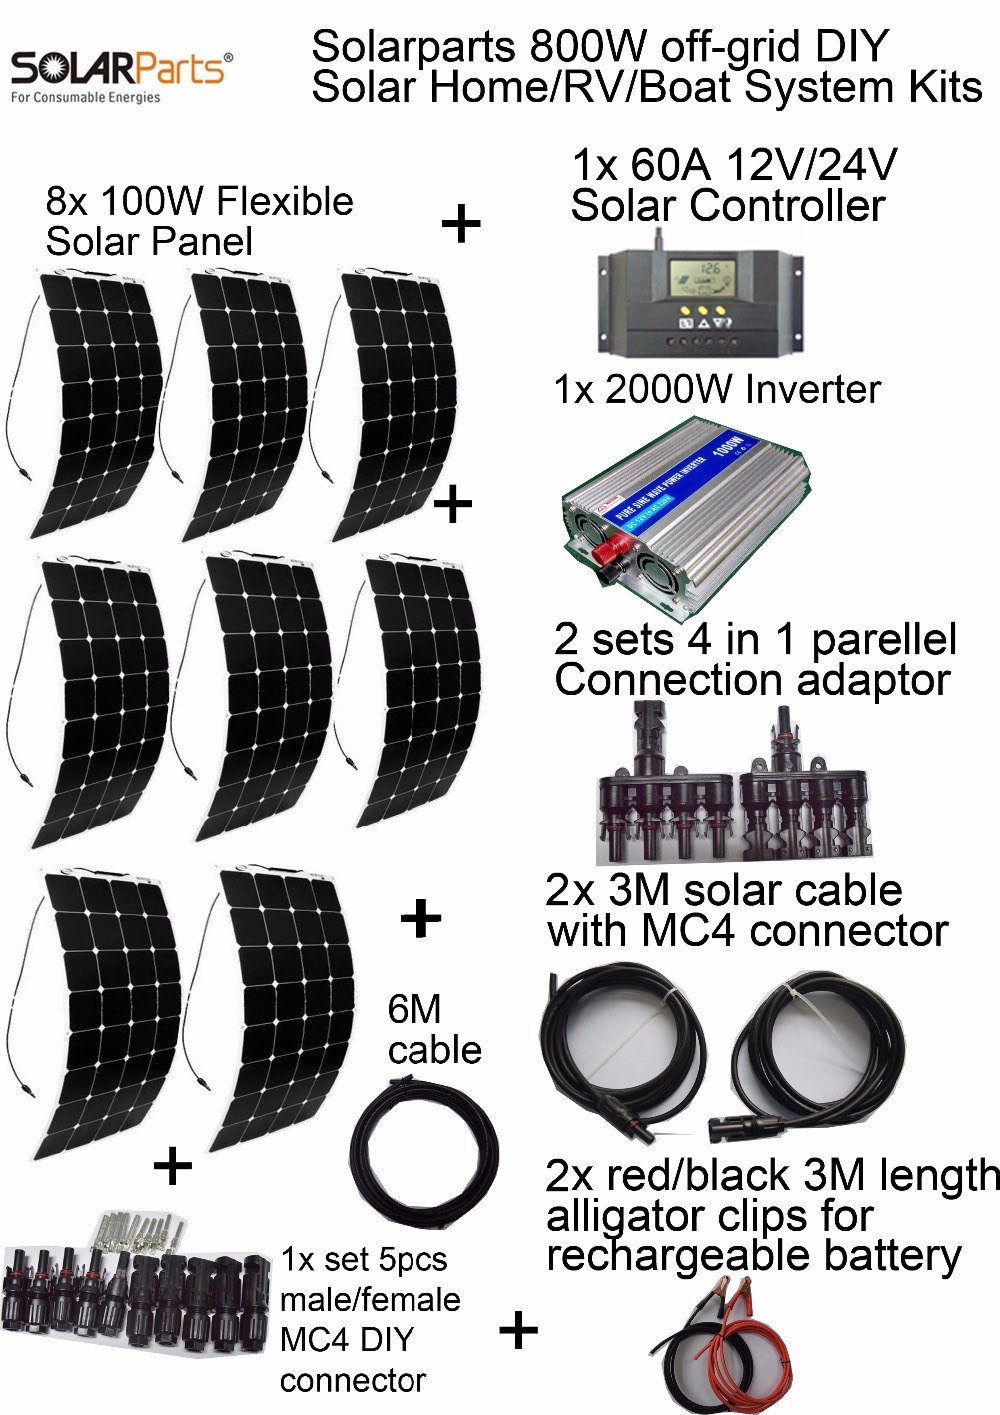 BOGUANG off-grid Solar System KITS 800W flexible solar panel 1pcs 60A controller 2KW inverter 2 sets 4 in1 MC4 adaptor cable solarparts off grid solar system kits 800w flexible solar panel 1pcs 60a controller 2kw inverter 2 sets 4 in1 mc4 adaptor cable